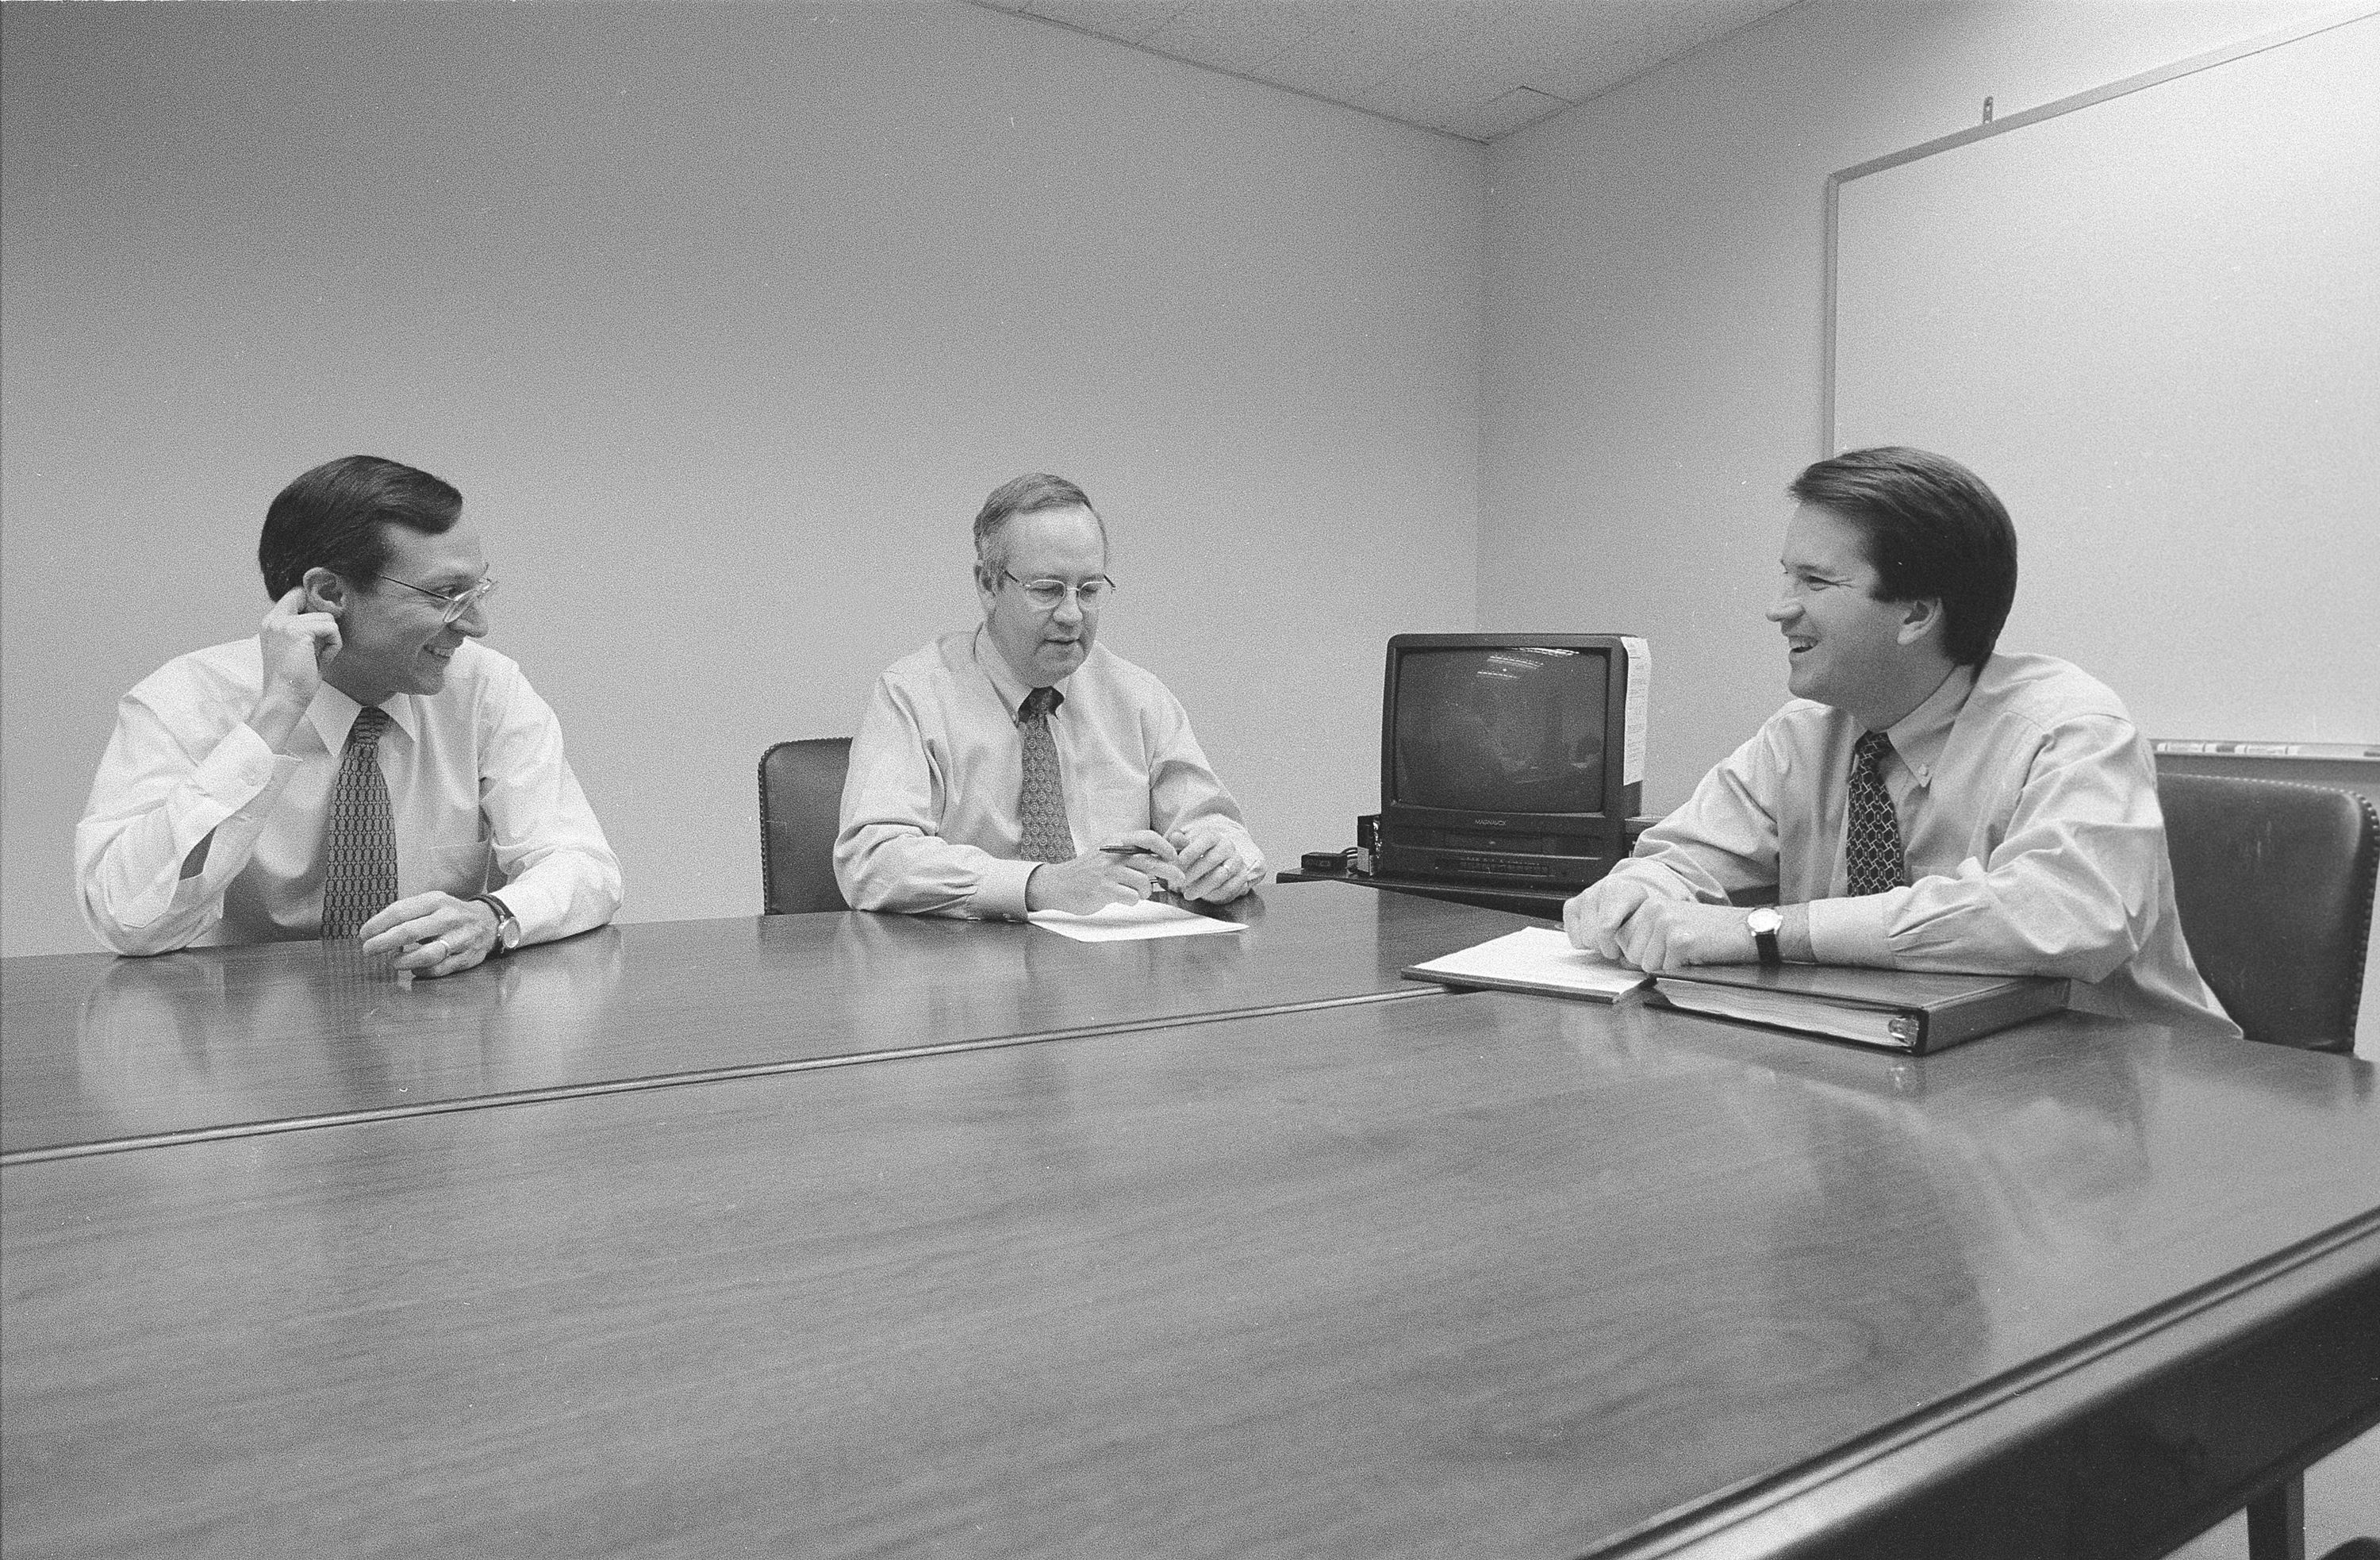 Independent Counsel Kenneth Starr, center, talks with Deputy Independent Counsel John Bates, left, and aide Brett Kavanaugh, right, and another colleague in the Office of the Solicitor General during the Whitewater Investigation on November 13, 1996 in Washington DC